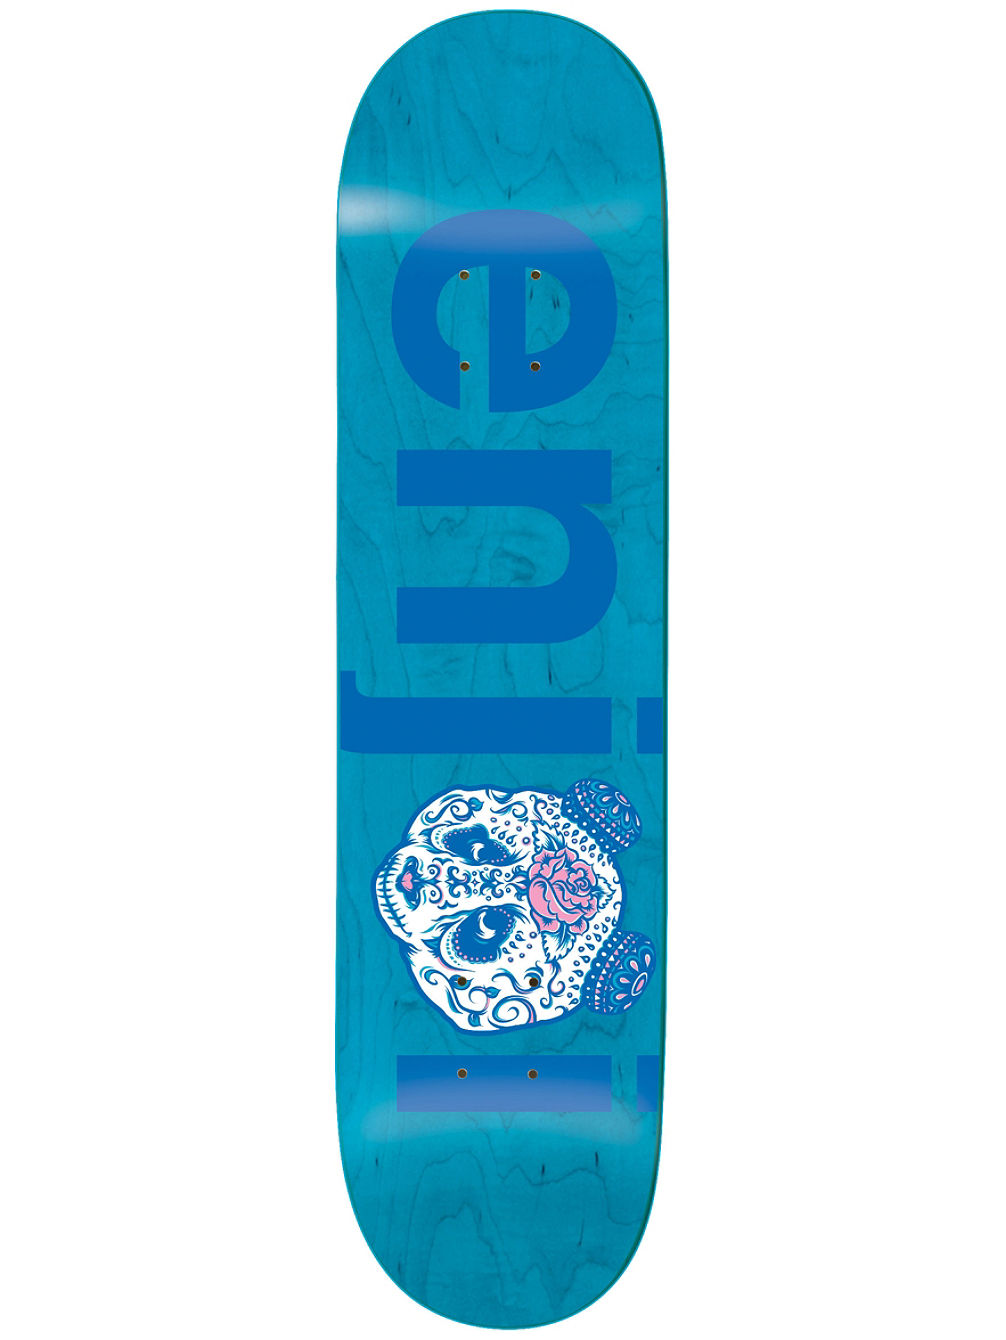 "No Brainer Quinceanera R7 8.0"" Skate Deck"